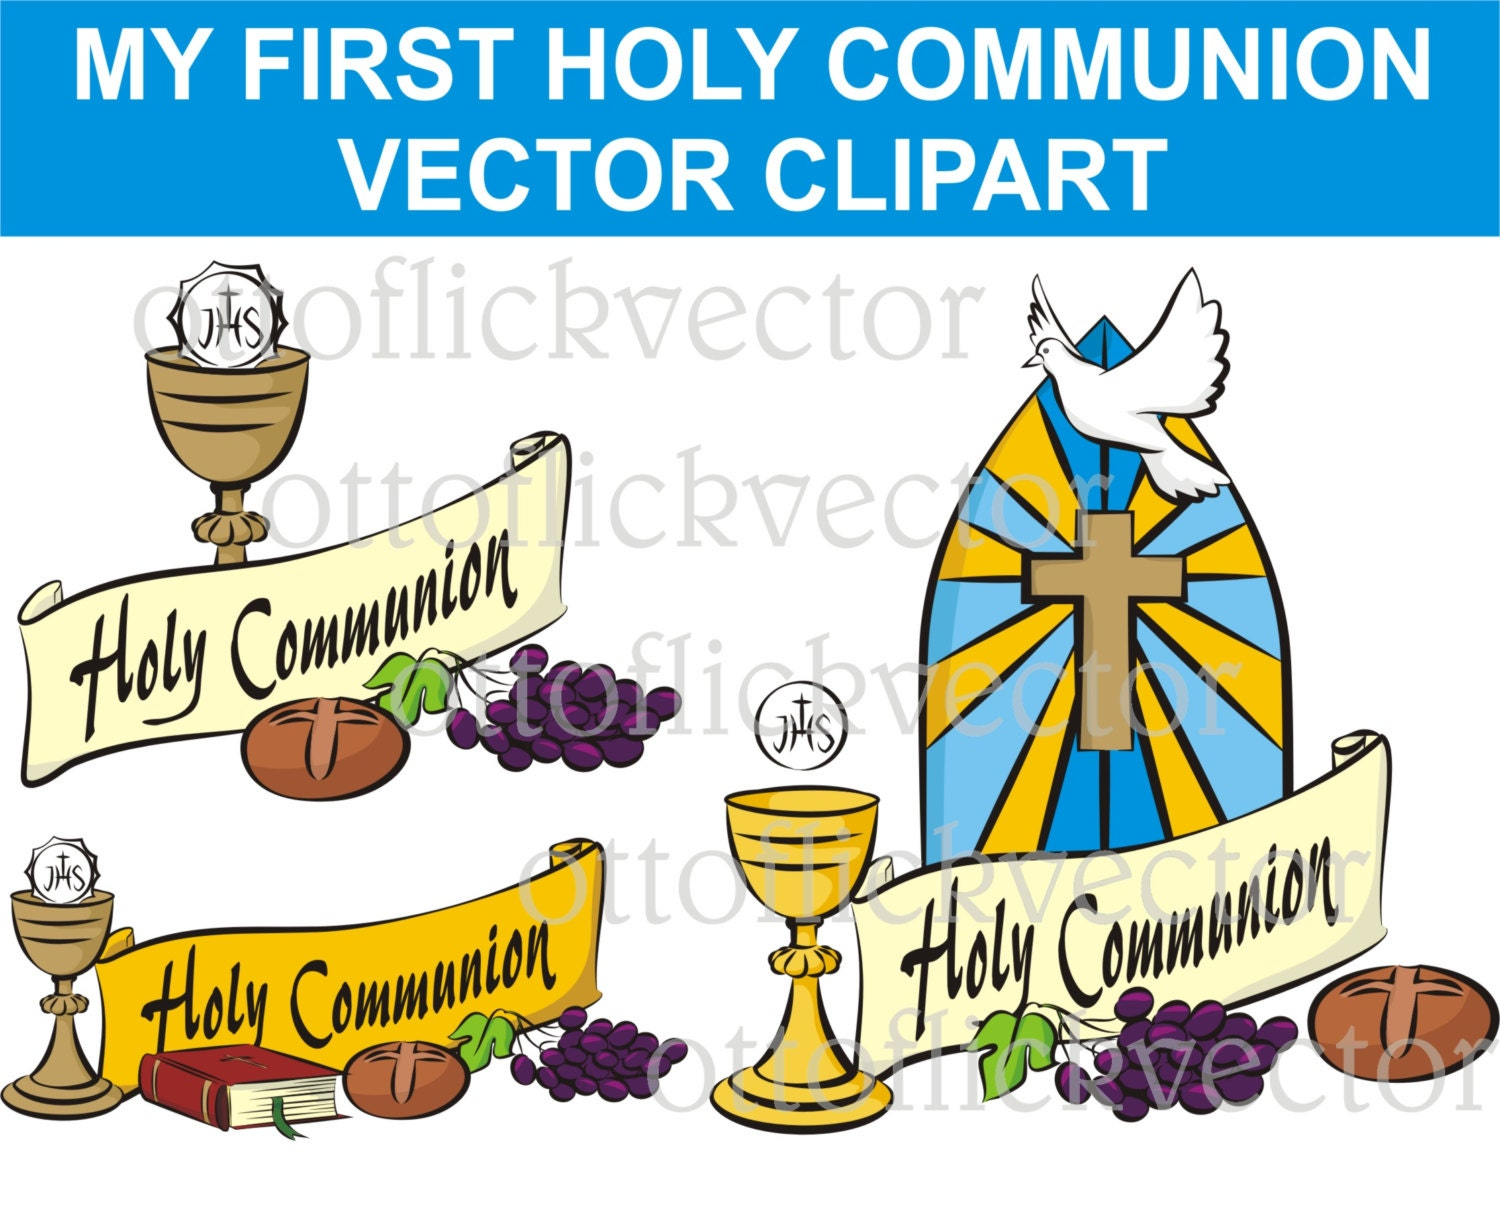 My first holy communion vector clipart religion symbols eps ai this is a digital file biocorpaavc